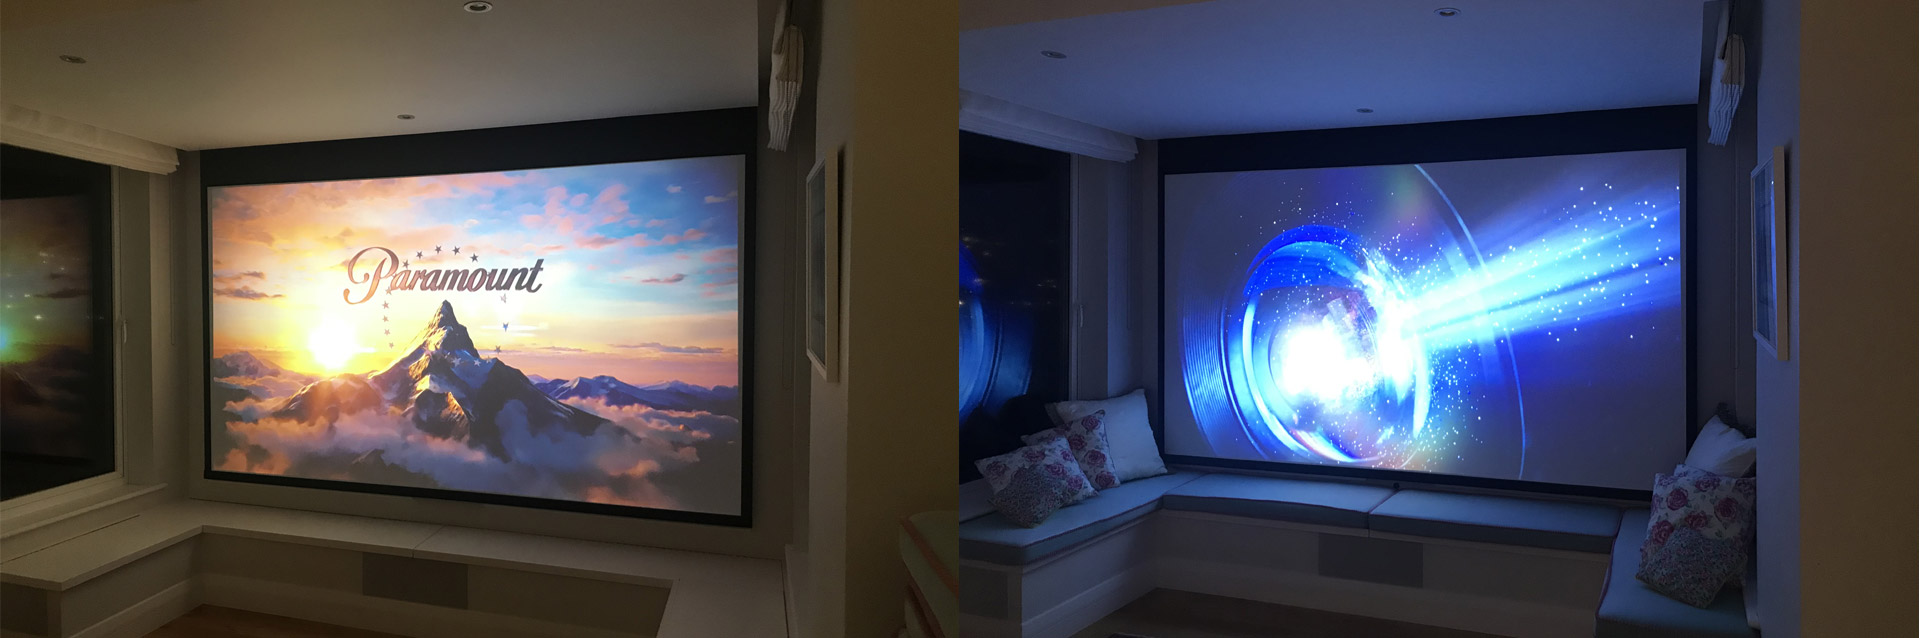 Two Home Cinema Images